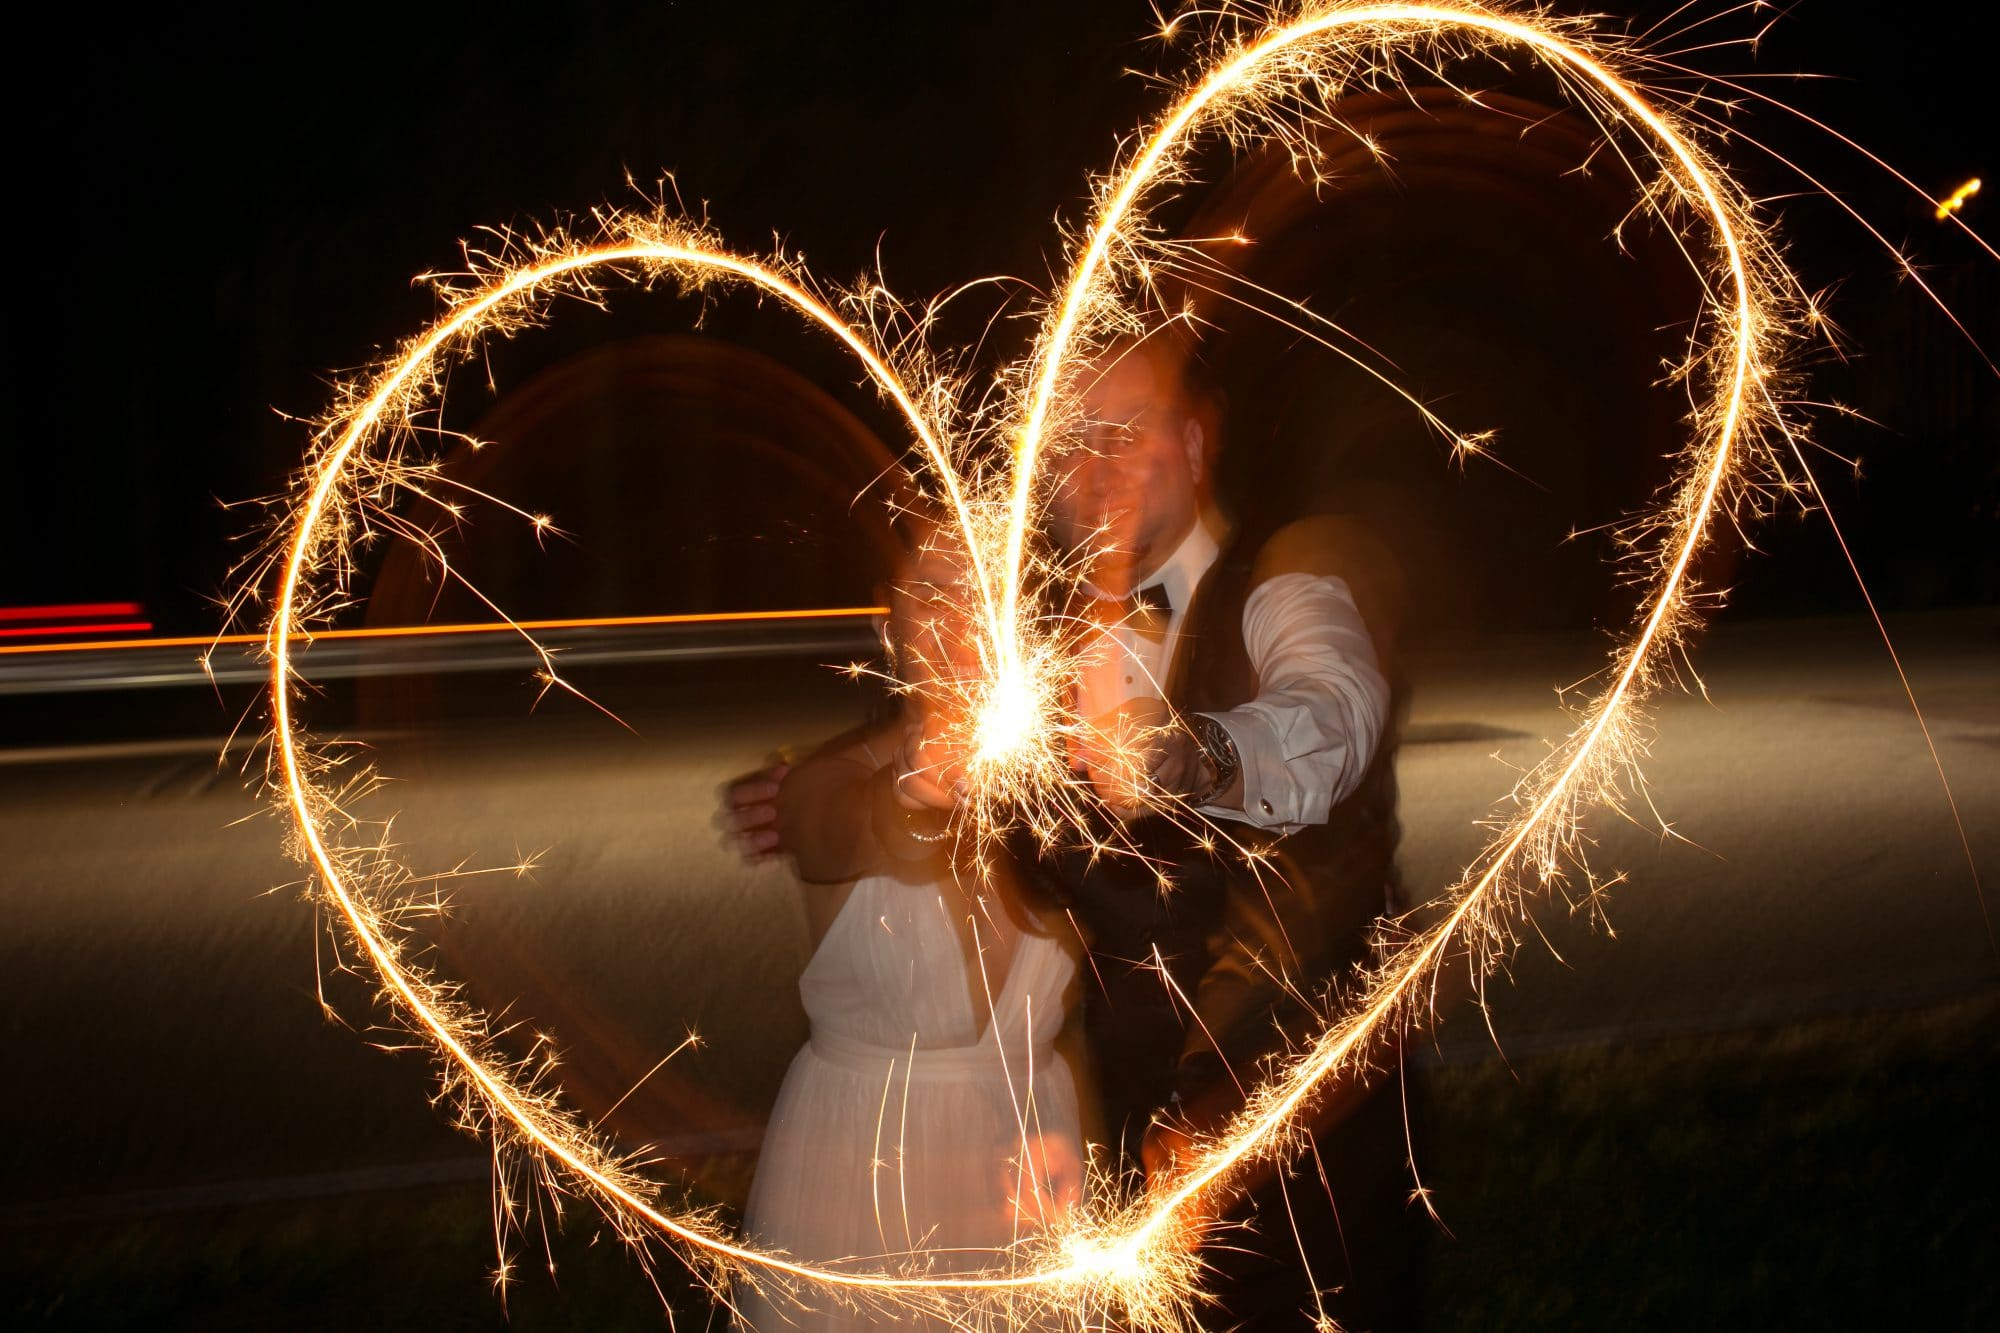 newlyweds making heart shape with sparklers